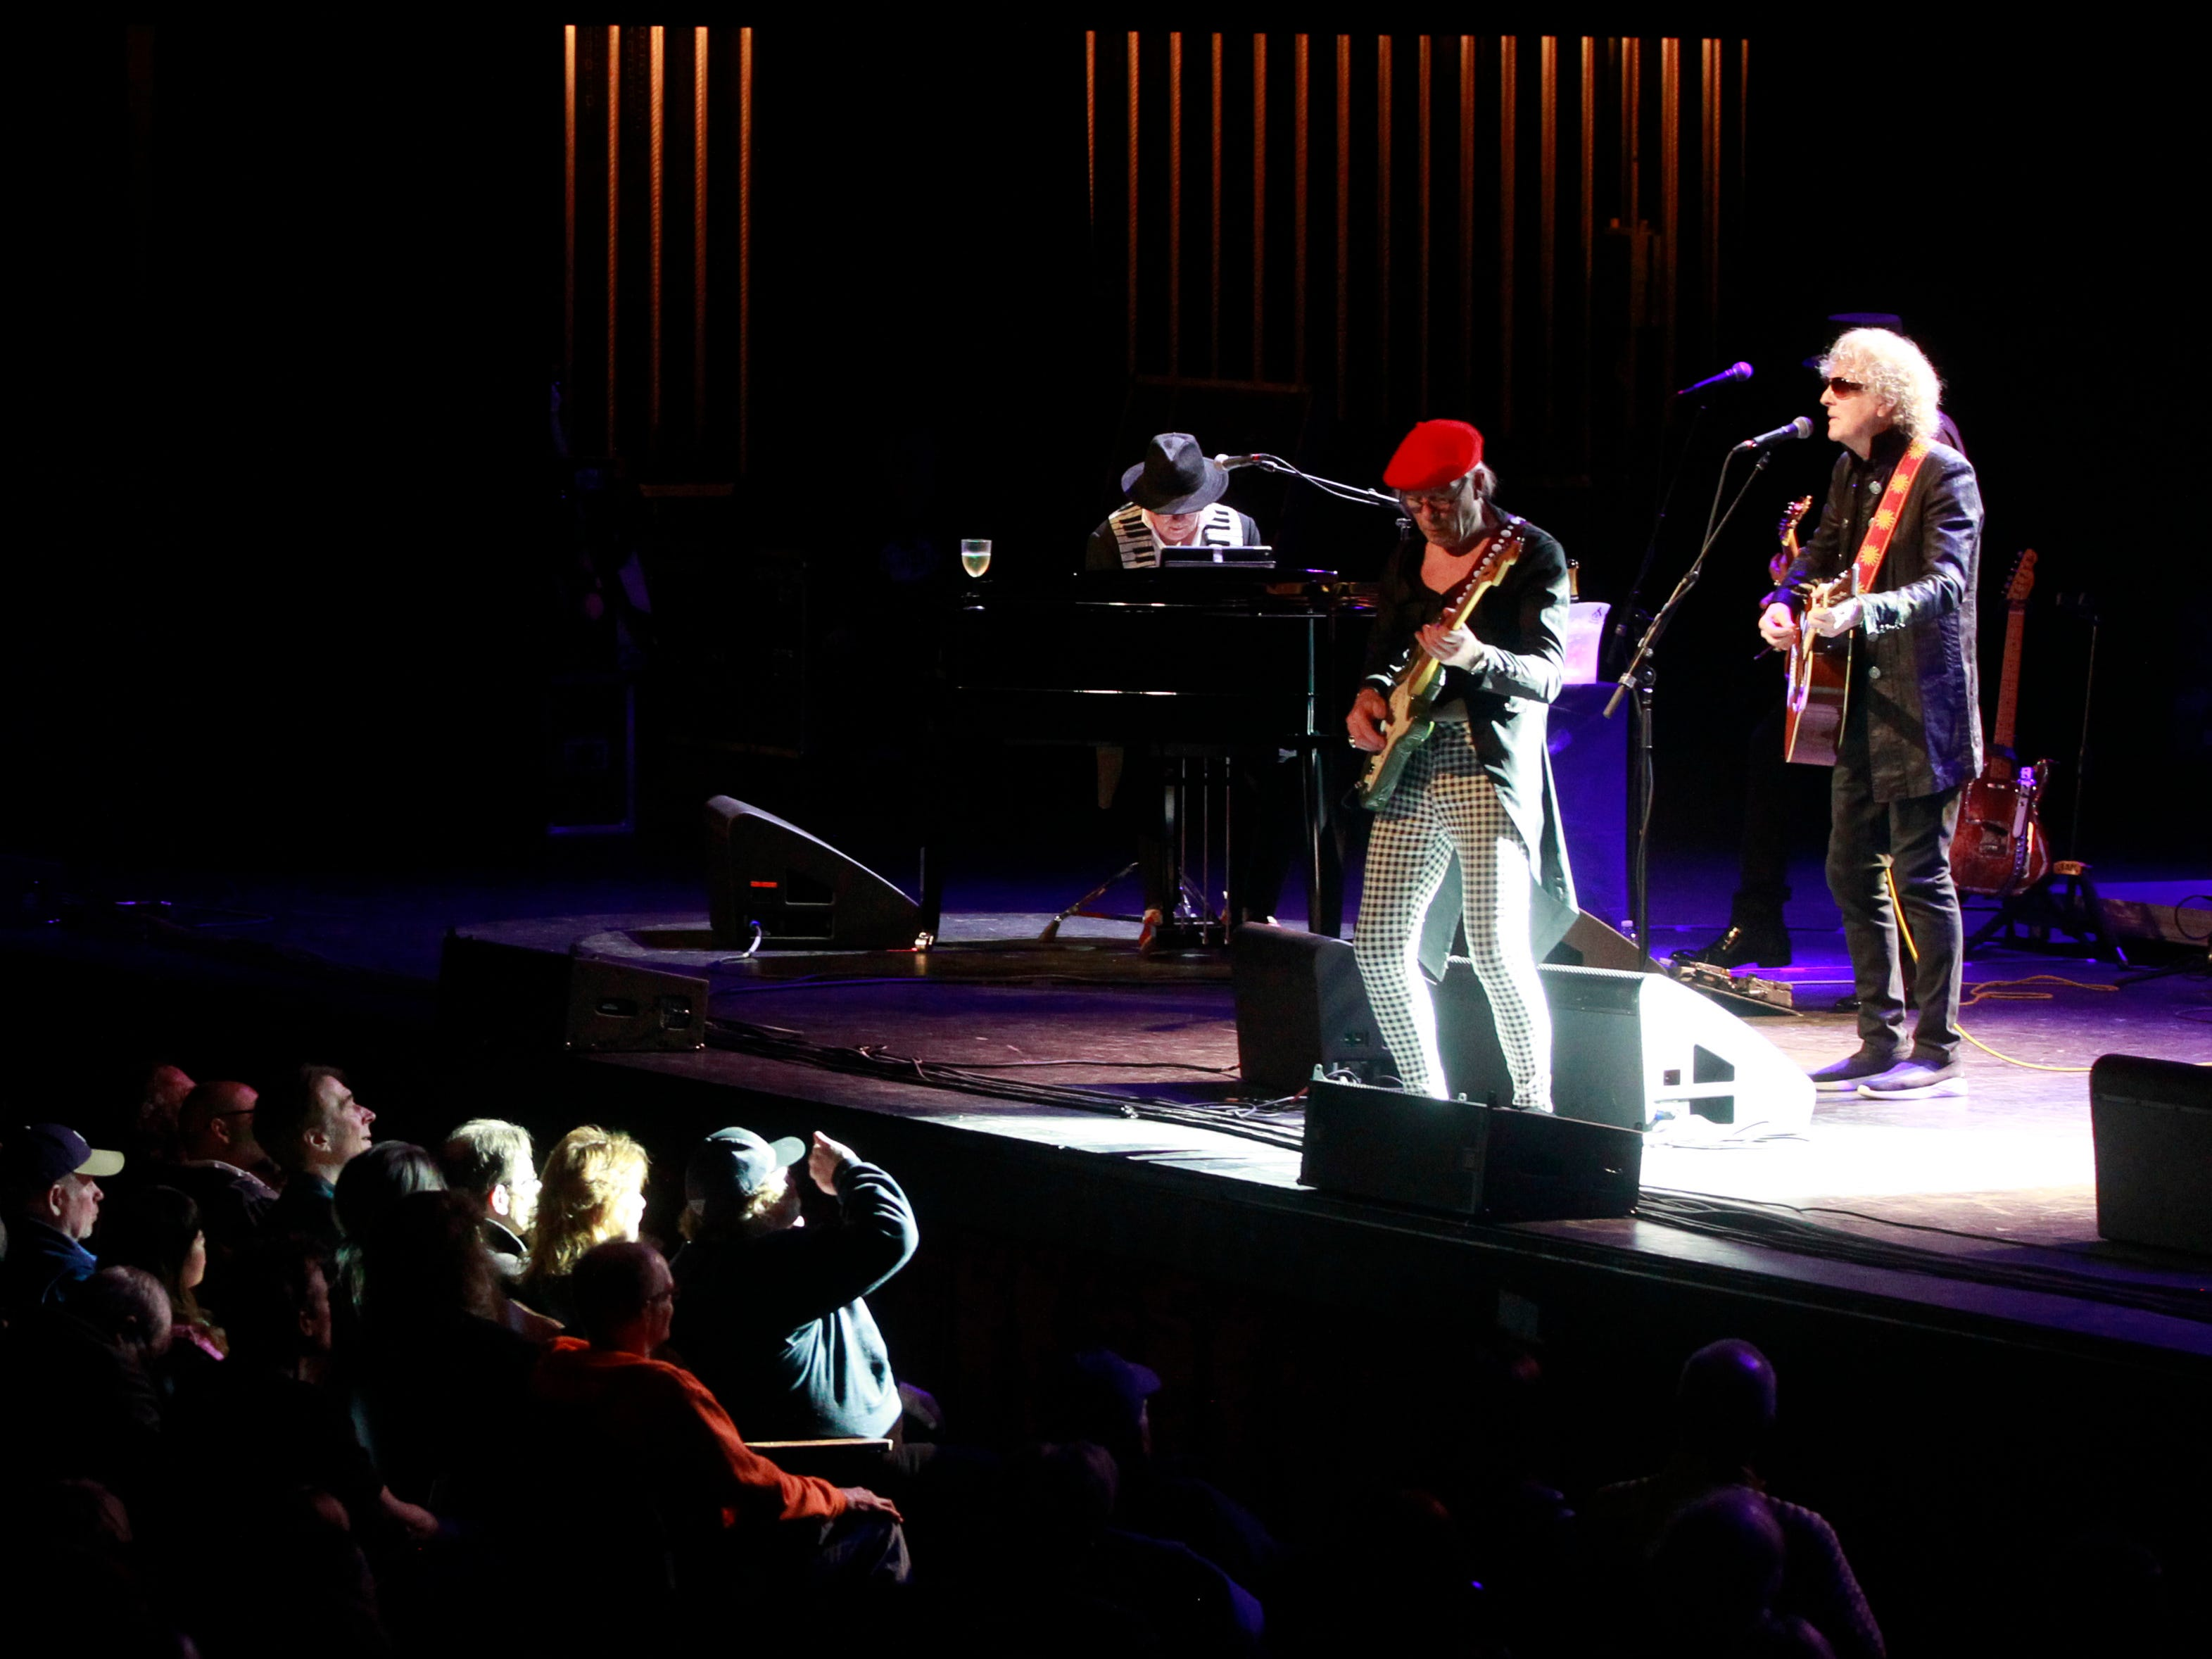 Ariel Bender, left and Ian Hunter,  right, from the Mott The Hoople, perform at the Miller High Life Theatre in Milwaukee.